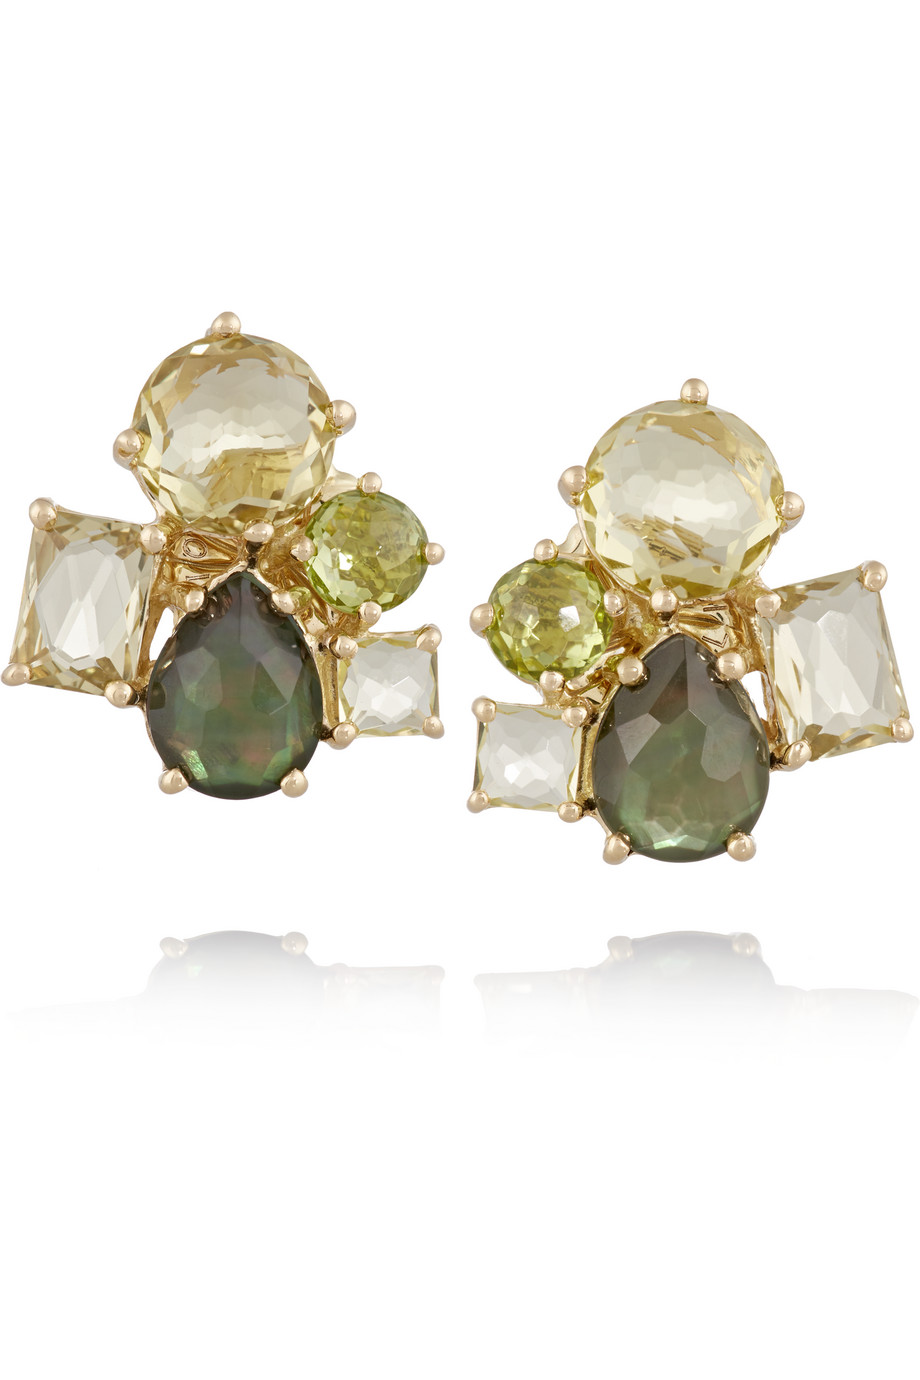 Ippolita Rock Candy Cluster 18-Karat Gold Multi-Stone Earrings, Gold/Green, Women's